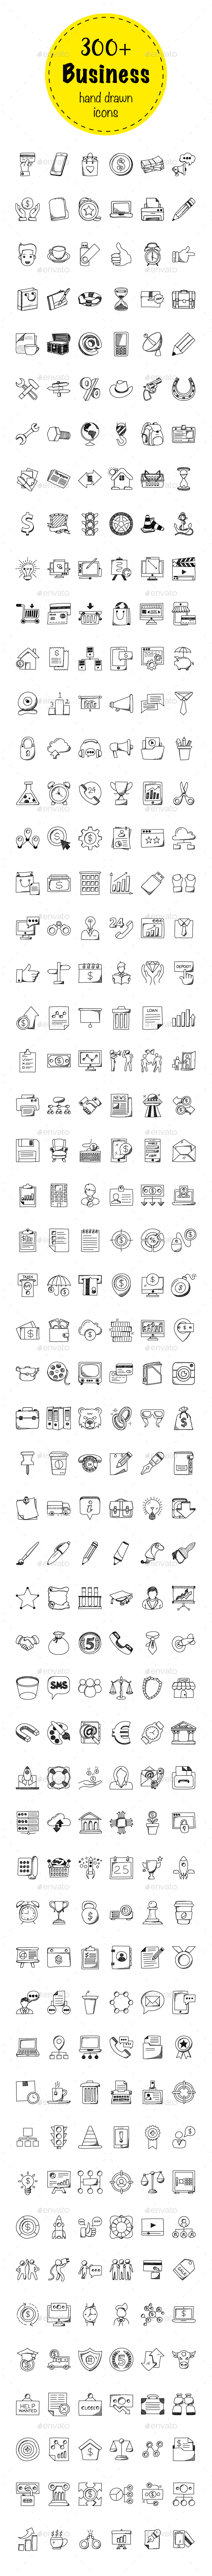 324 Business Doodle Icons - Icons